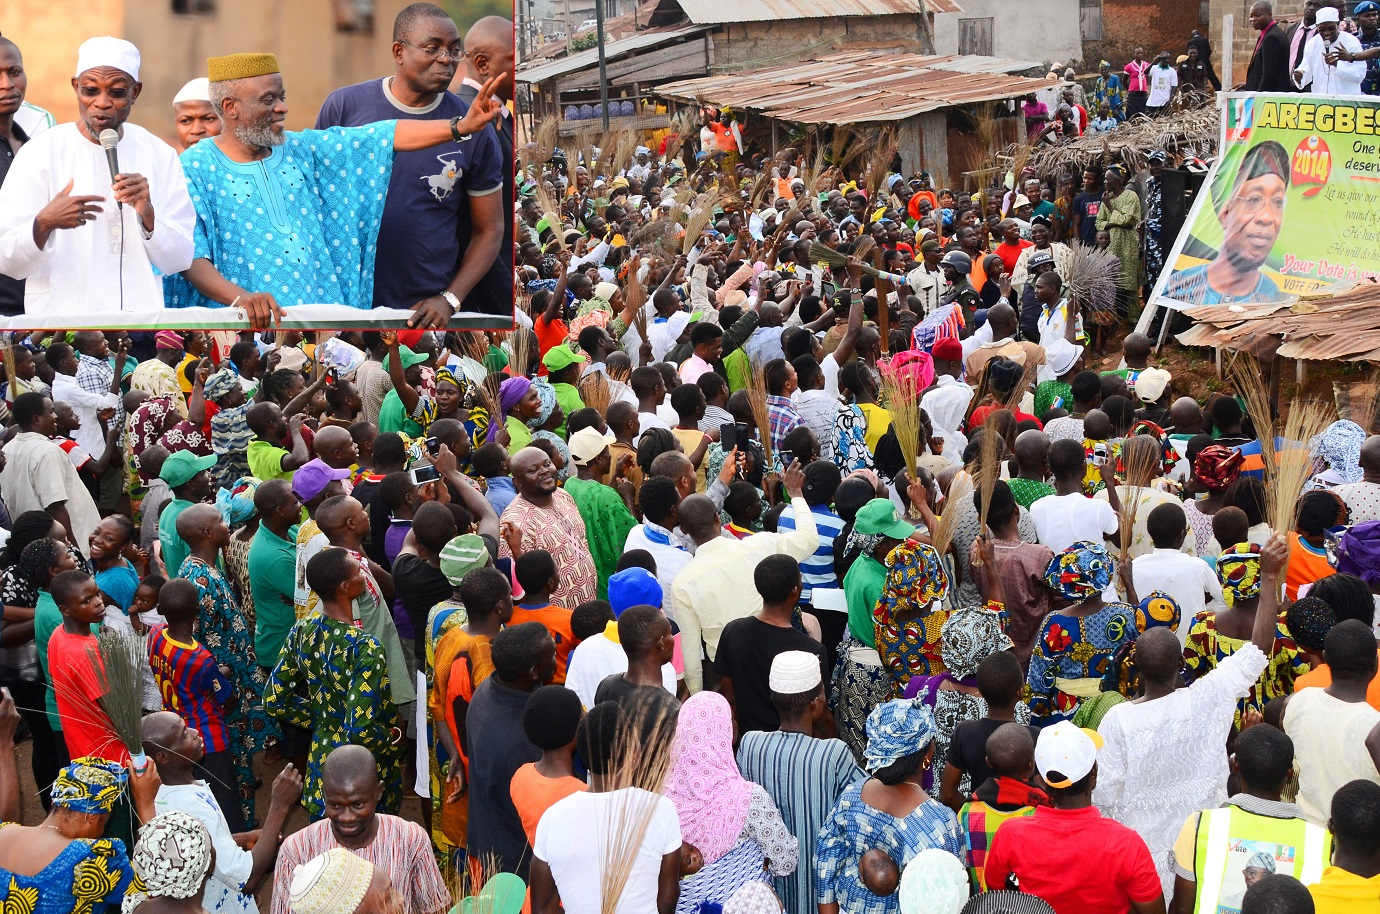 Indigenes of Ora-Igbomina in Ifedayo Local Government of Osun welcoming Governor Rauf Aregbesola, during a Thank You Visit to the ancient town. Insert: From left, Governor Rauf Aregbesola; Member, National Assembly representing Osun Central Senatorial District, Senator Sola Adeyeye and Executive Secretary, Ifedayo Local Government, Mr Kunle Ayantoye, on Monday 11-08-2014